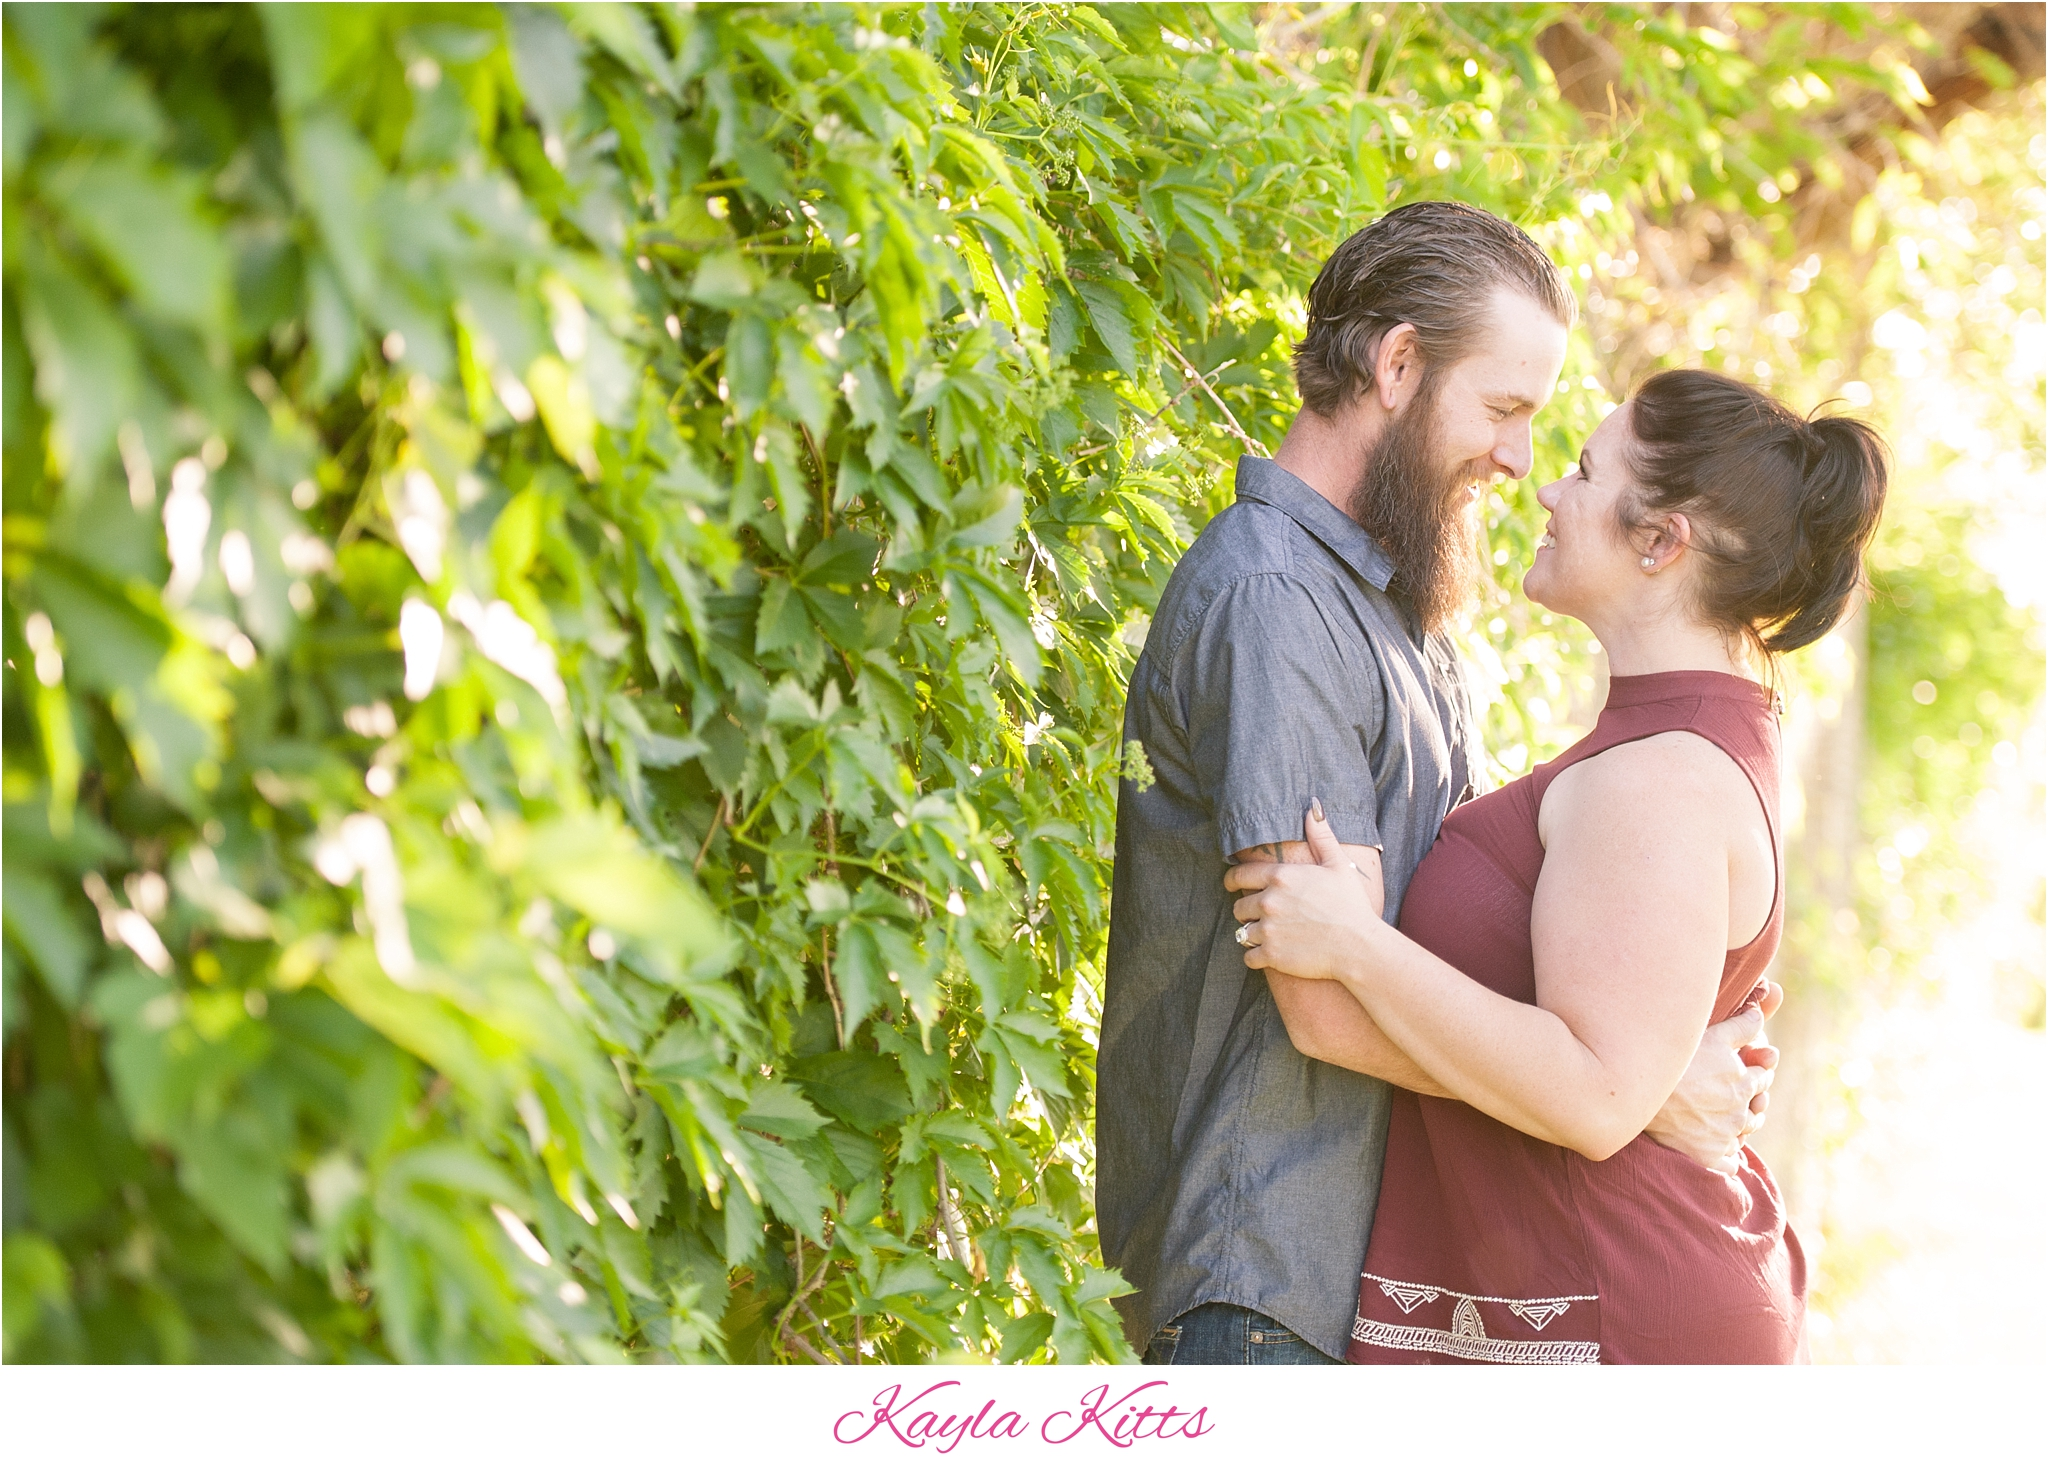 kayla kitts photography - albuquerque wedding photographer - albuquerque engagement photographer - nm wedding - albuquerque wedding - nm wedding - unm engagement - bosque engagement session_0011.jpg